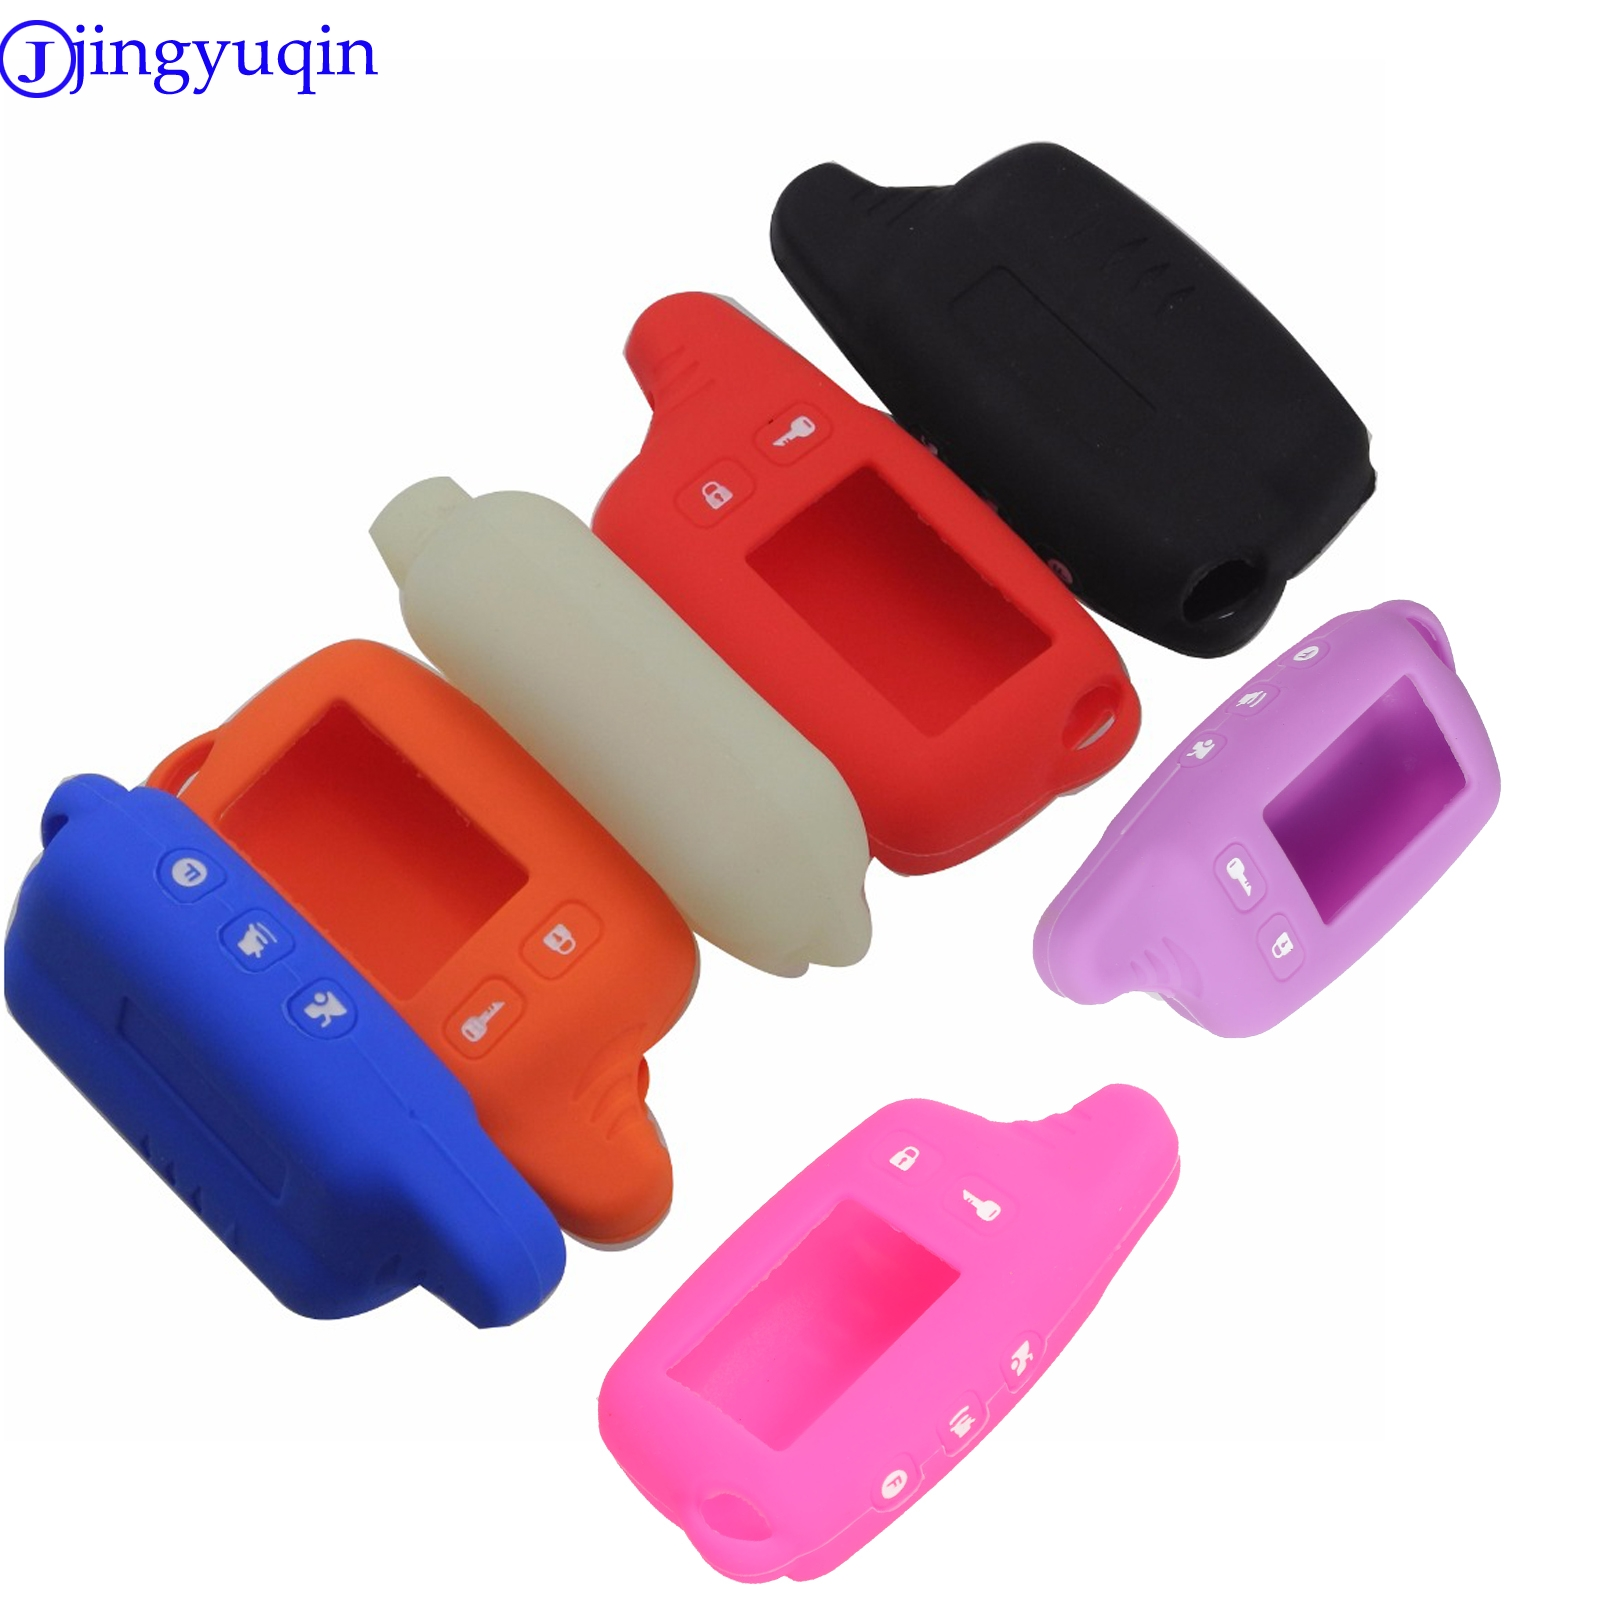 Jingyuqin Keychain Alarm-System Silicone-Case Tw9010 Tomahawk for Russian 2-Way Fob